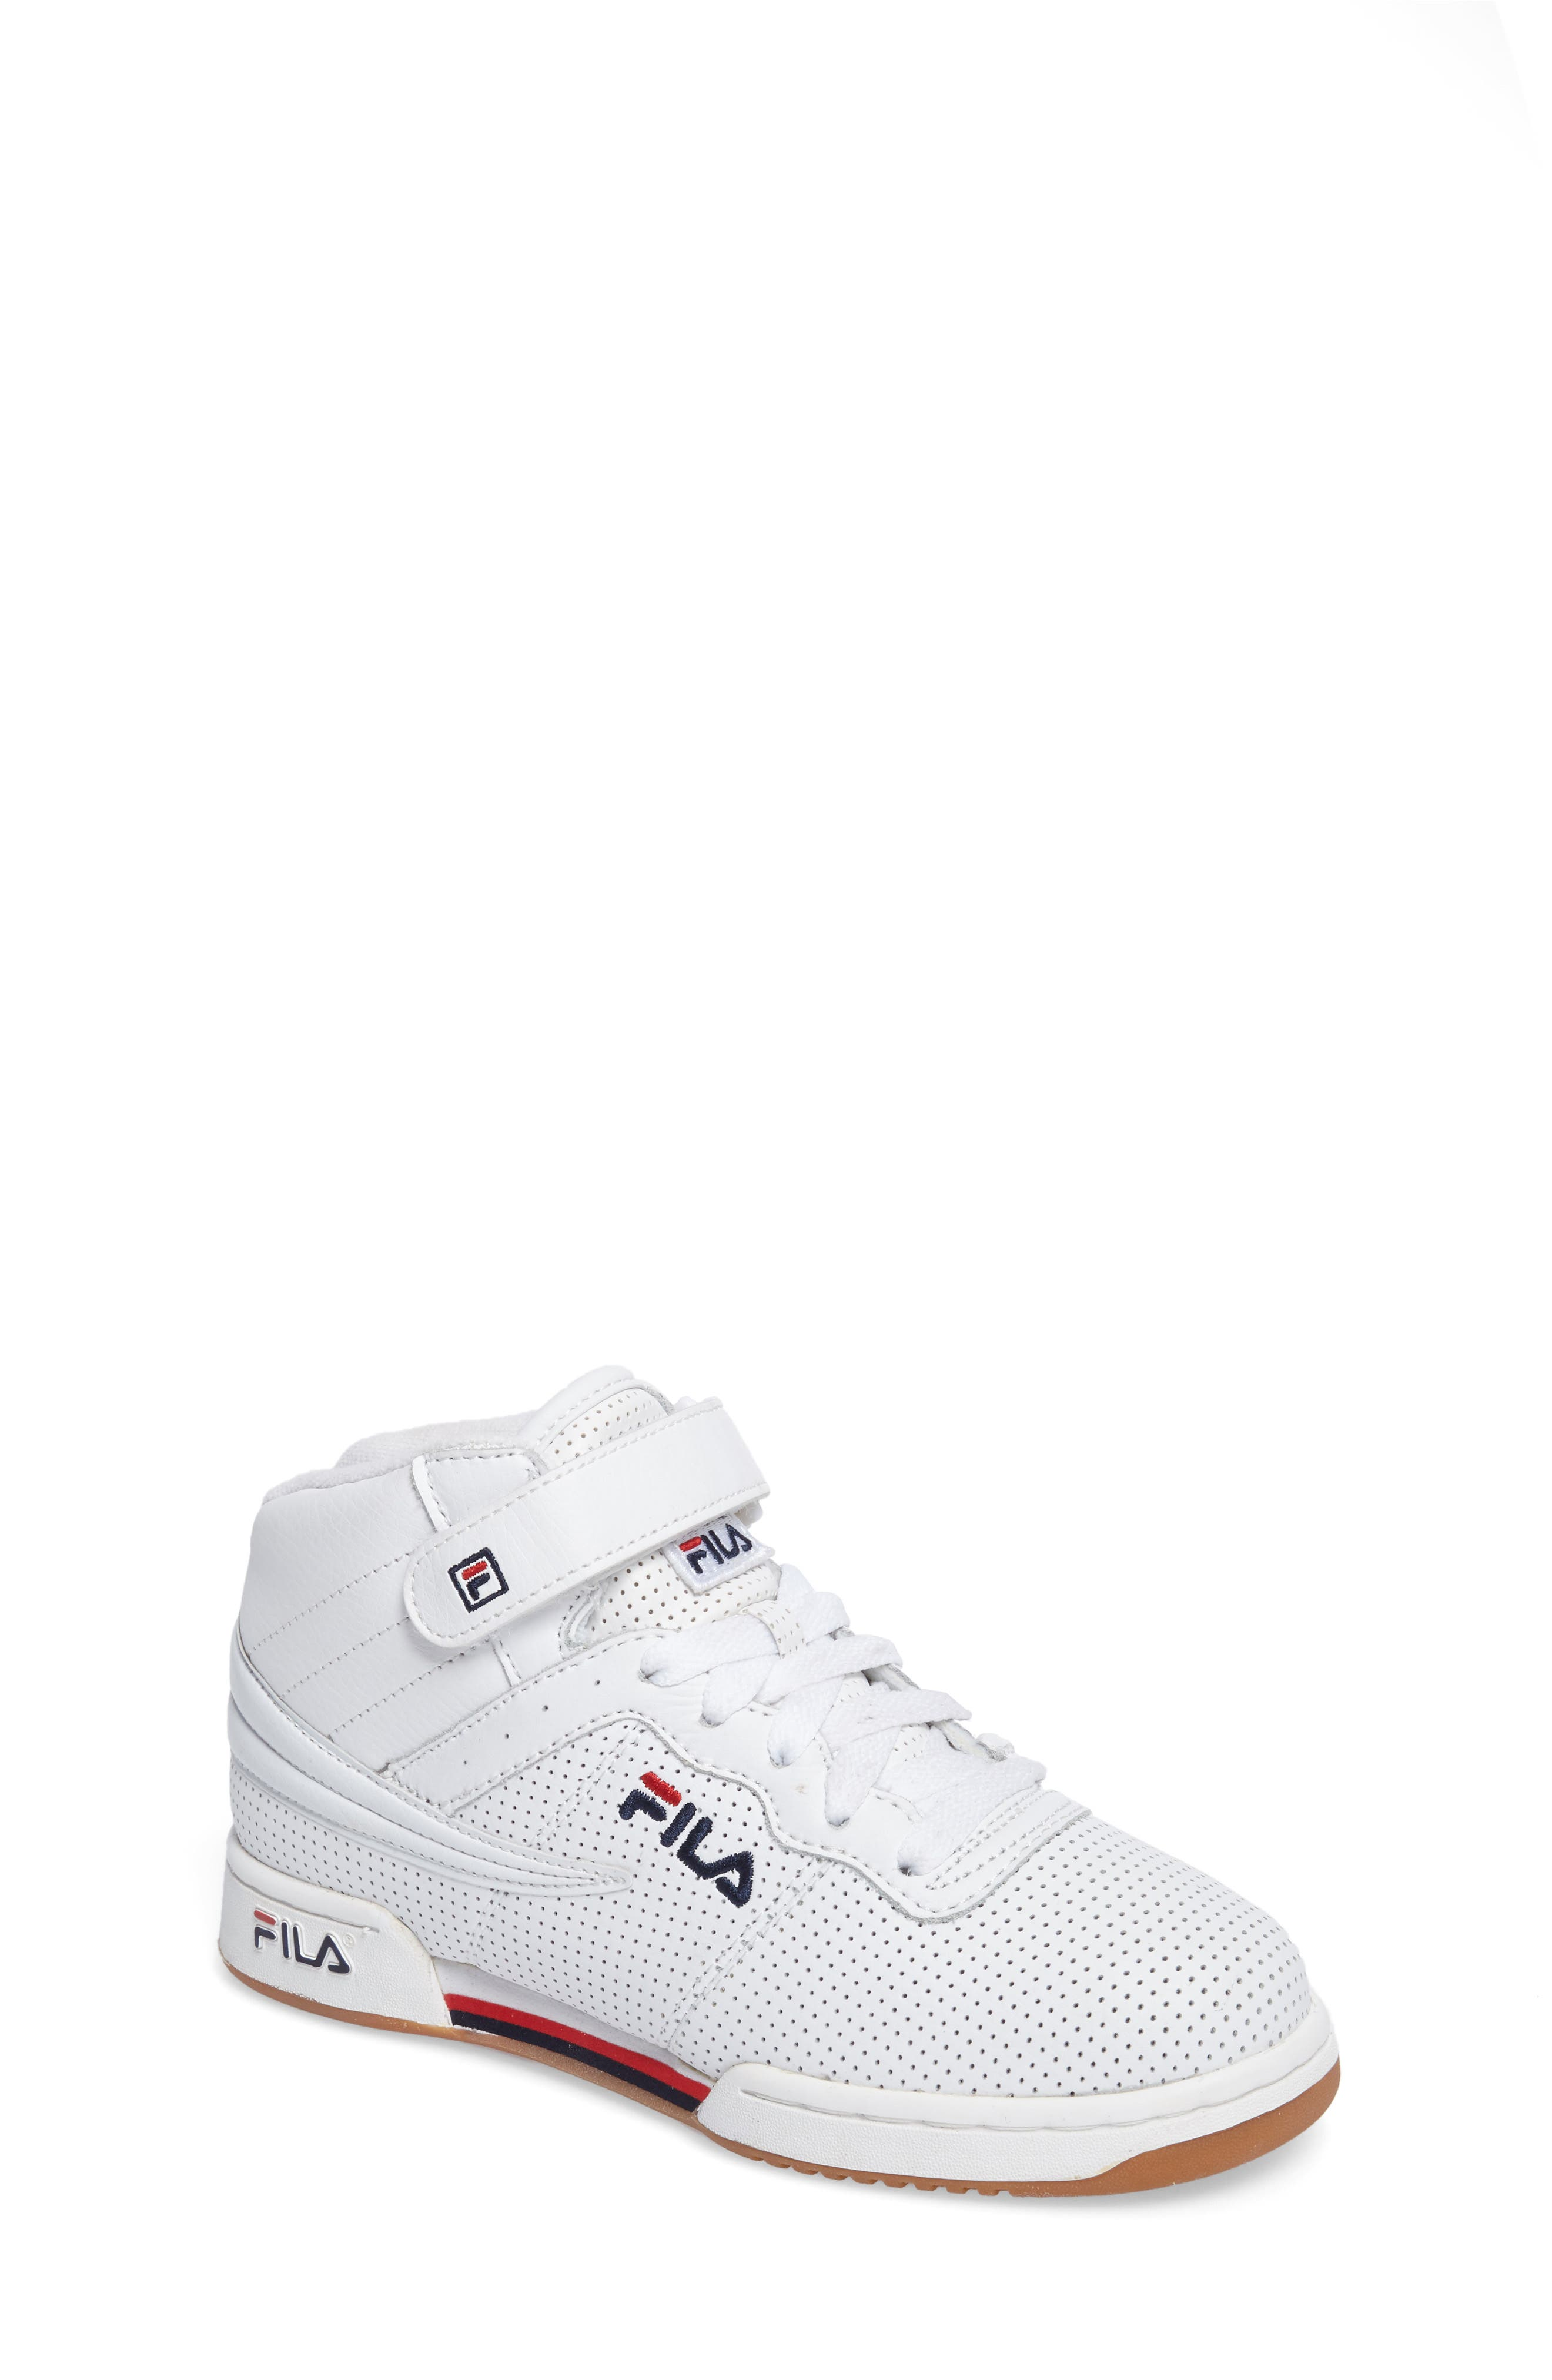 F-13 Perforated High Top Sneaker,                         Main,                         color, White/Navy/Red